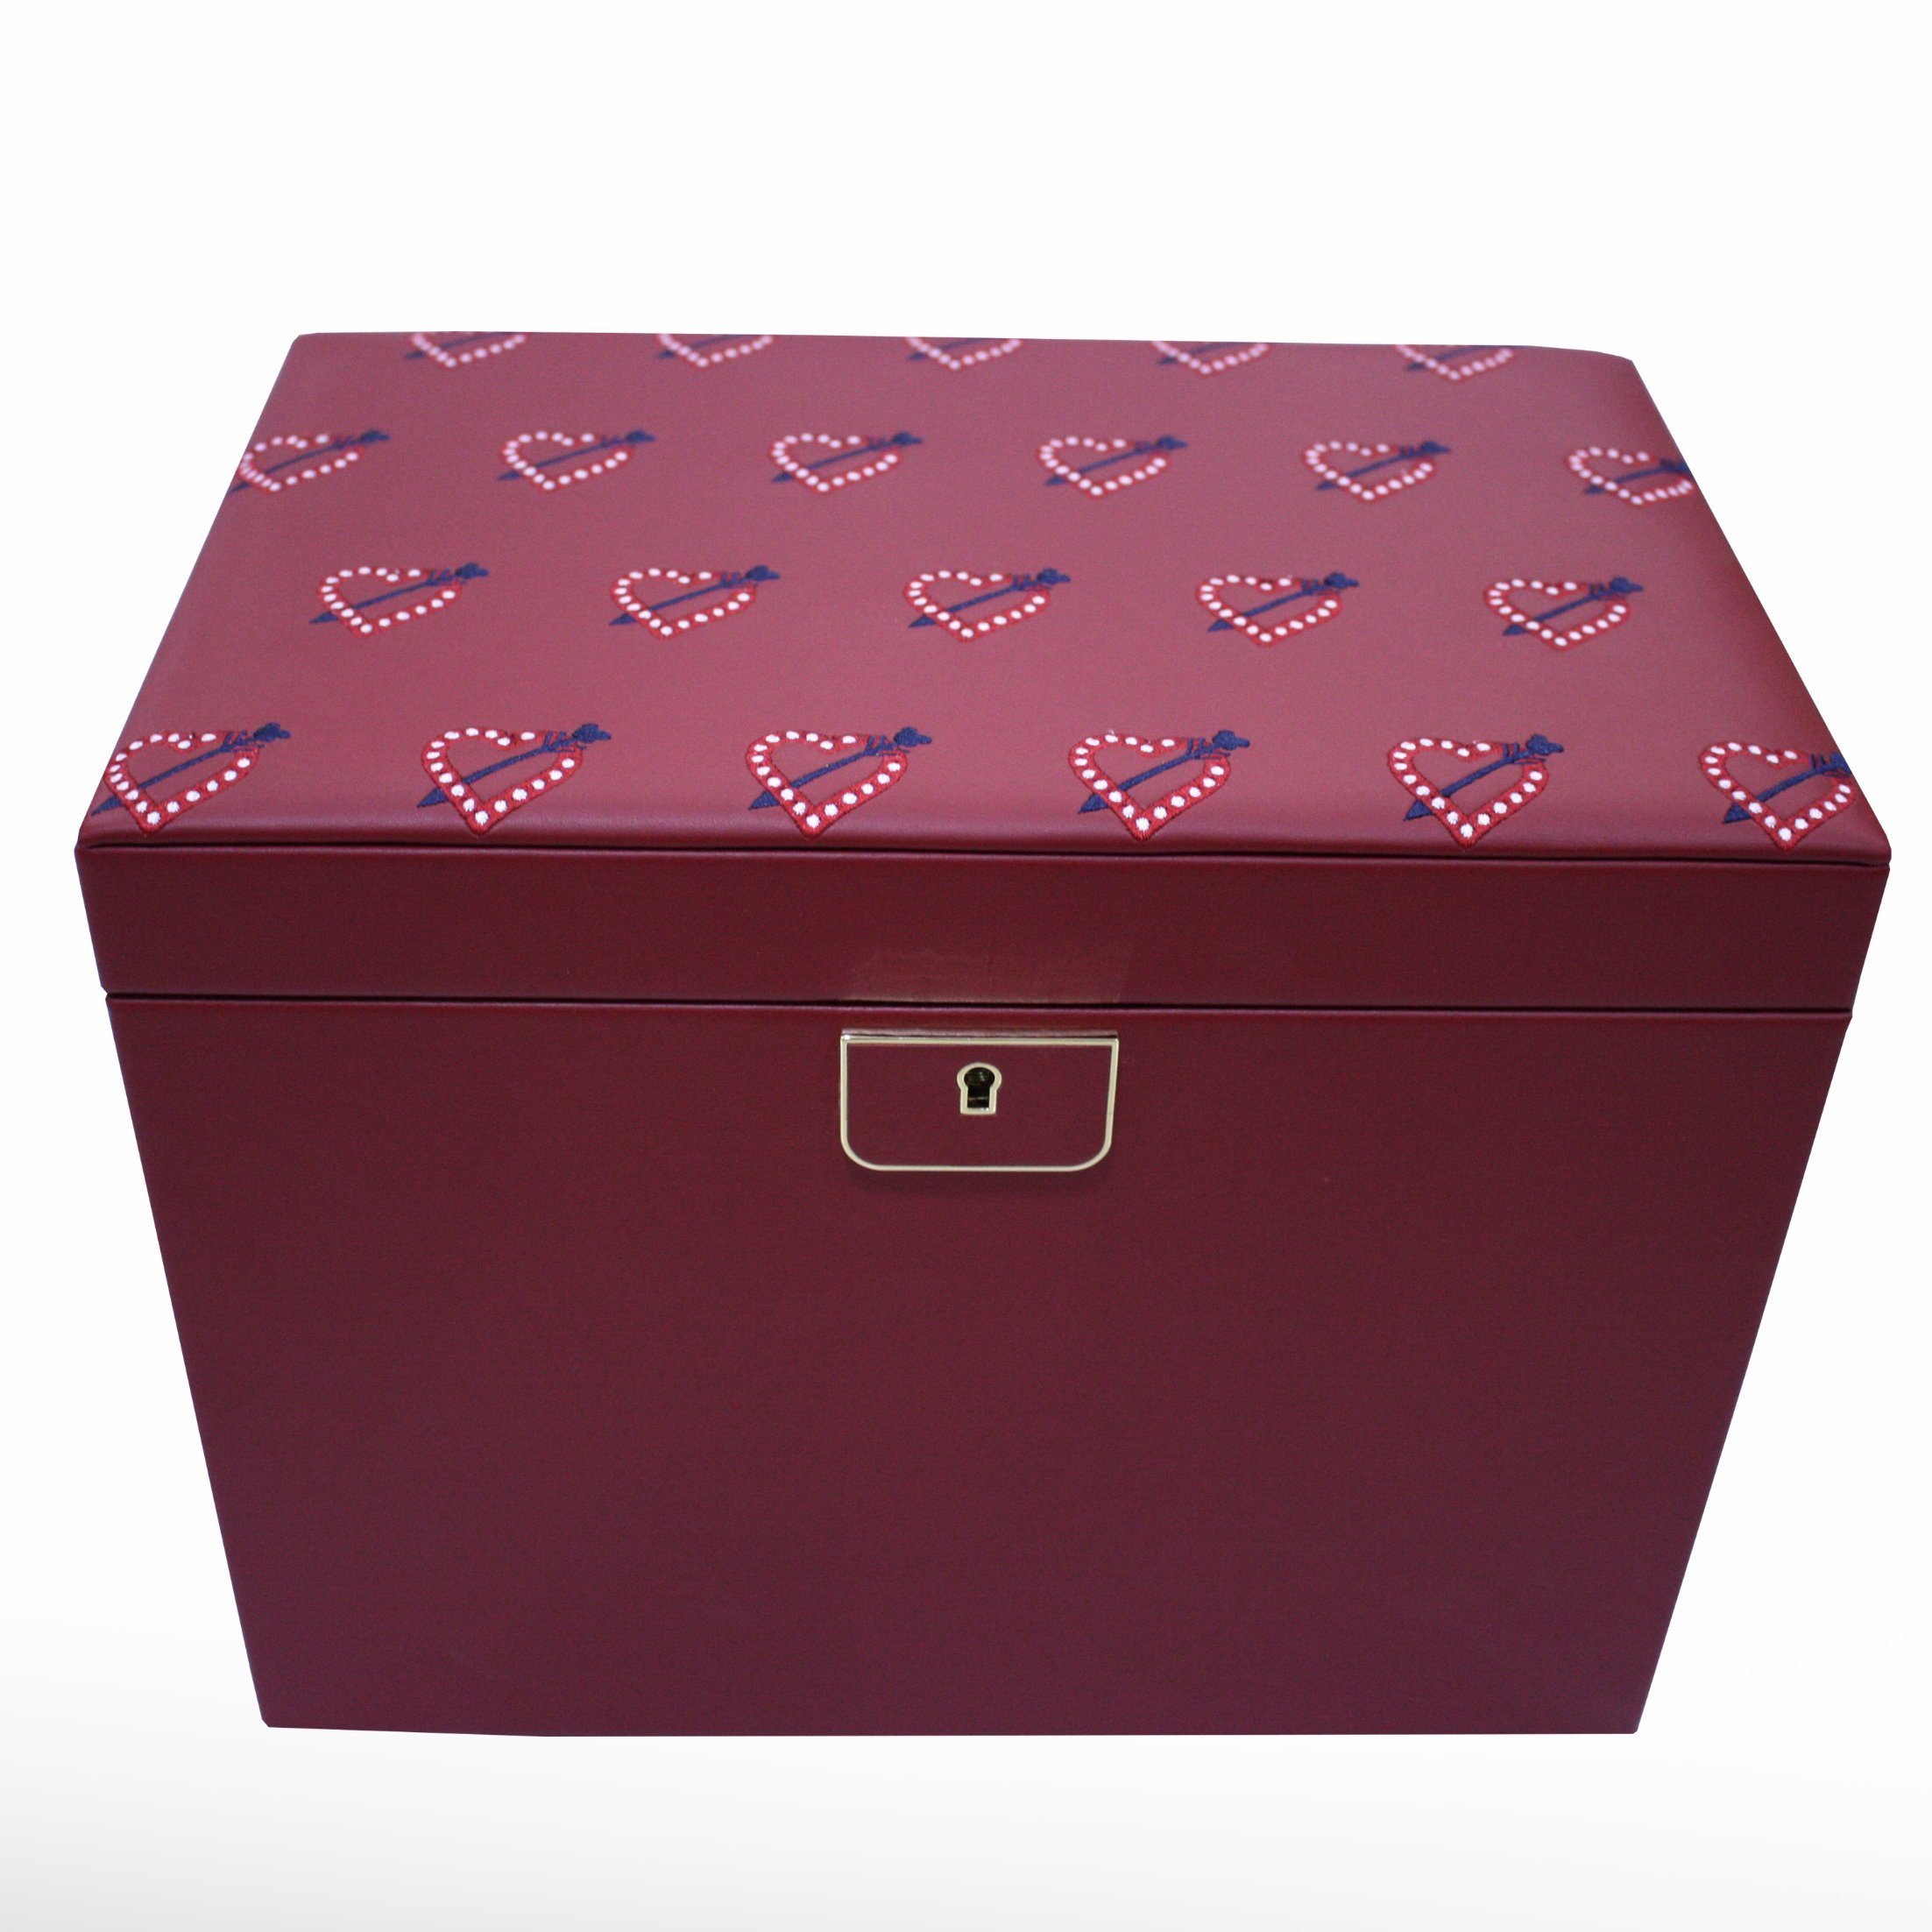 China High End Unique Wood Gift Box Sliding Wooden Boxes For Watch Jewelry Perfume China Simple Box Packaging Box